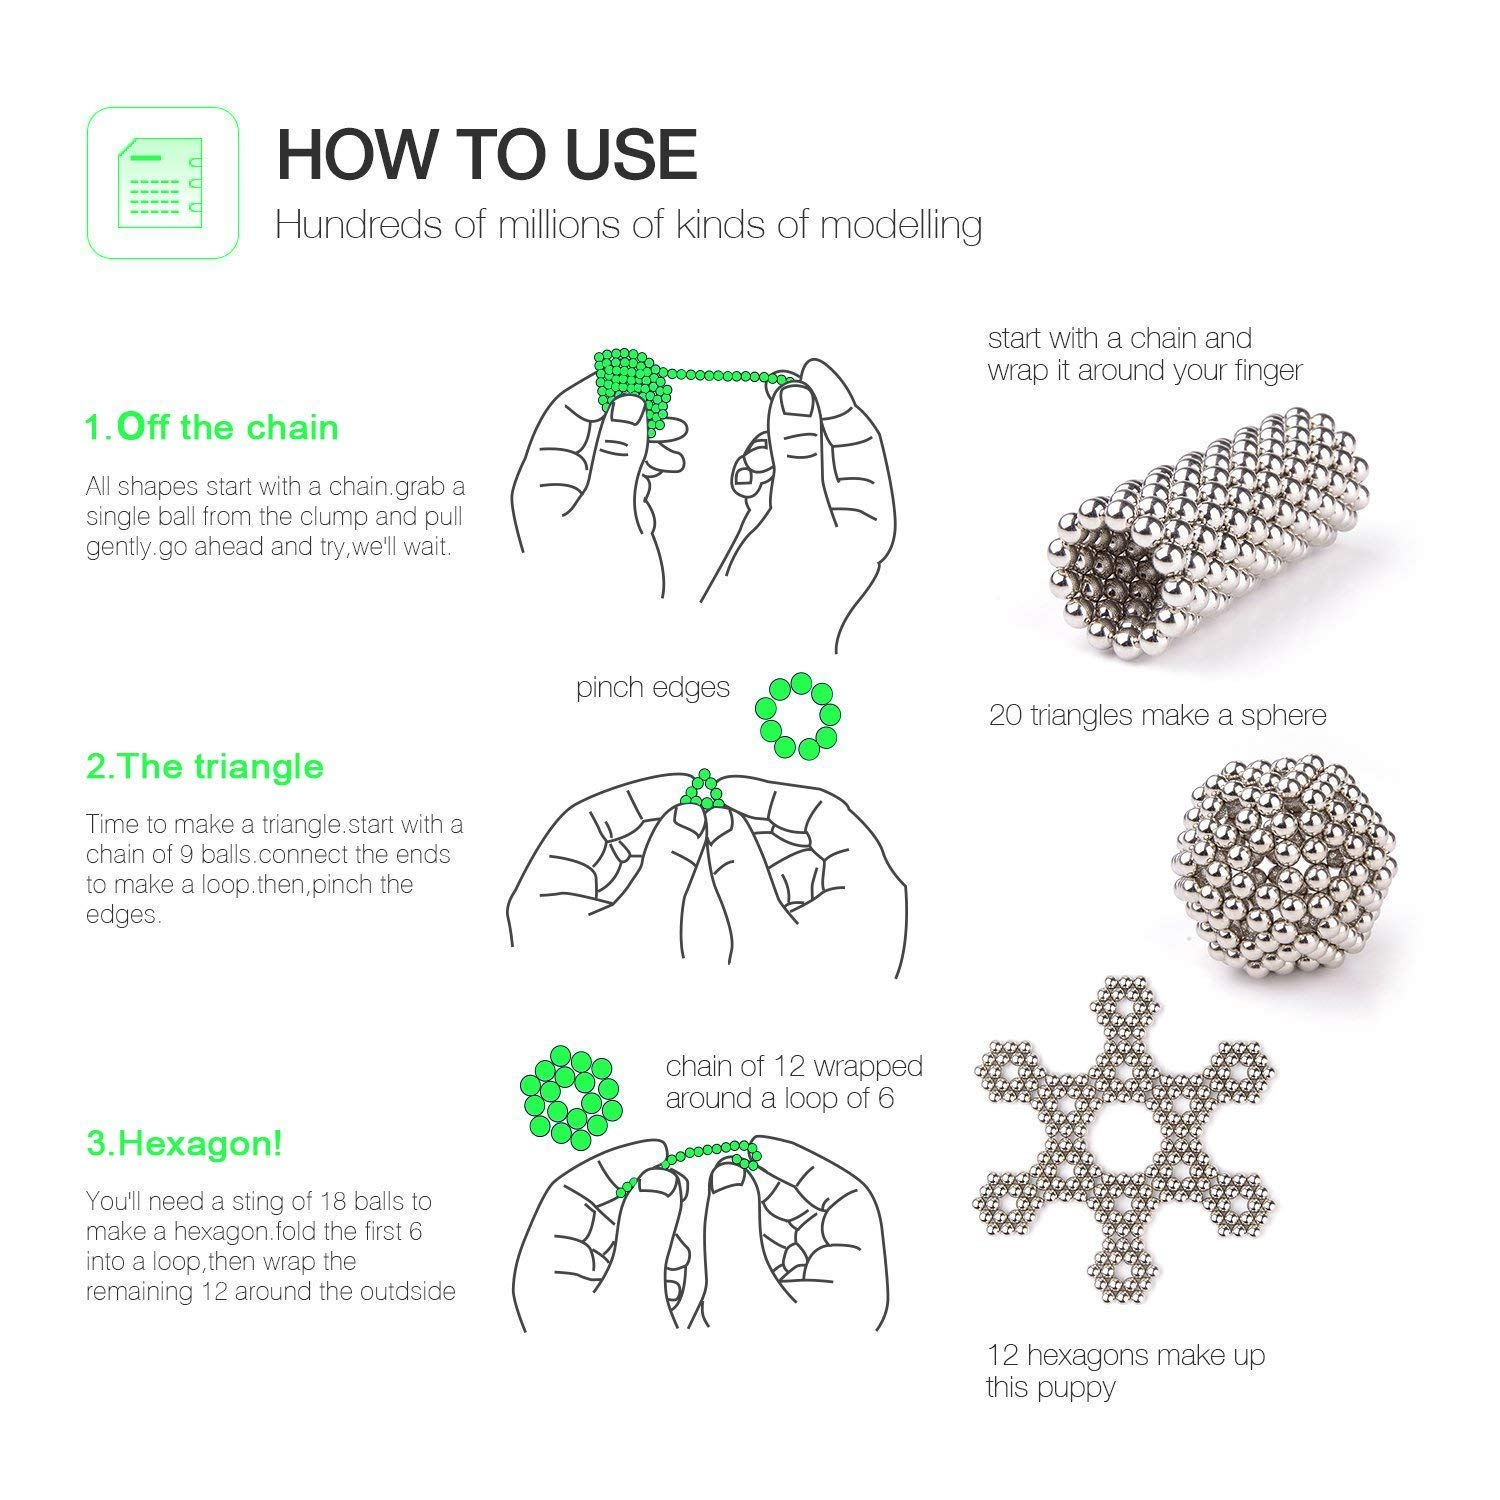 MagneBalls 5MM Magnetic Balls Set-Magnet Fidget Building Beads Desk Toy Perfect for Education Intelligence Development Games and Stress Relief Rainbow